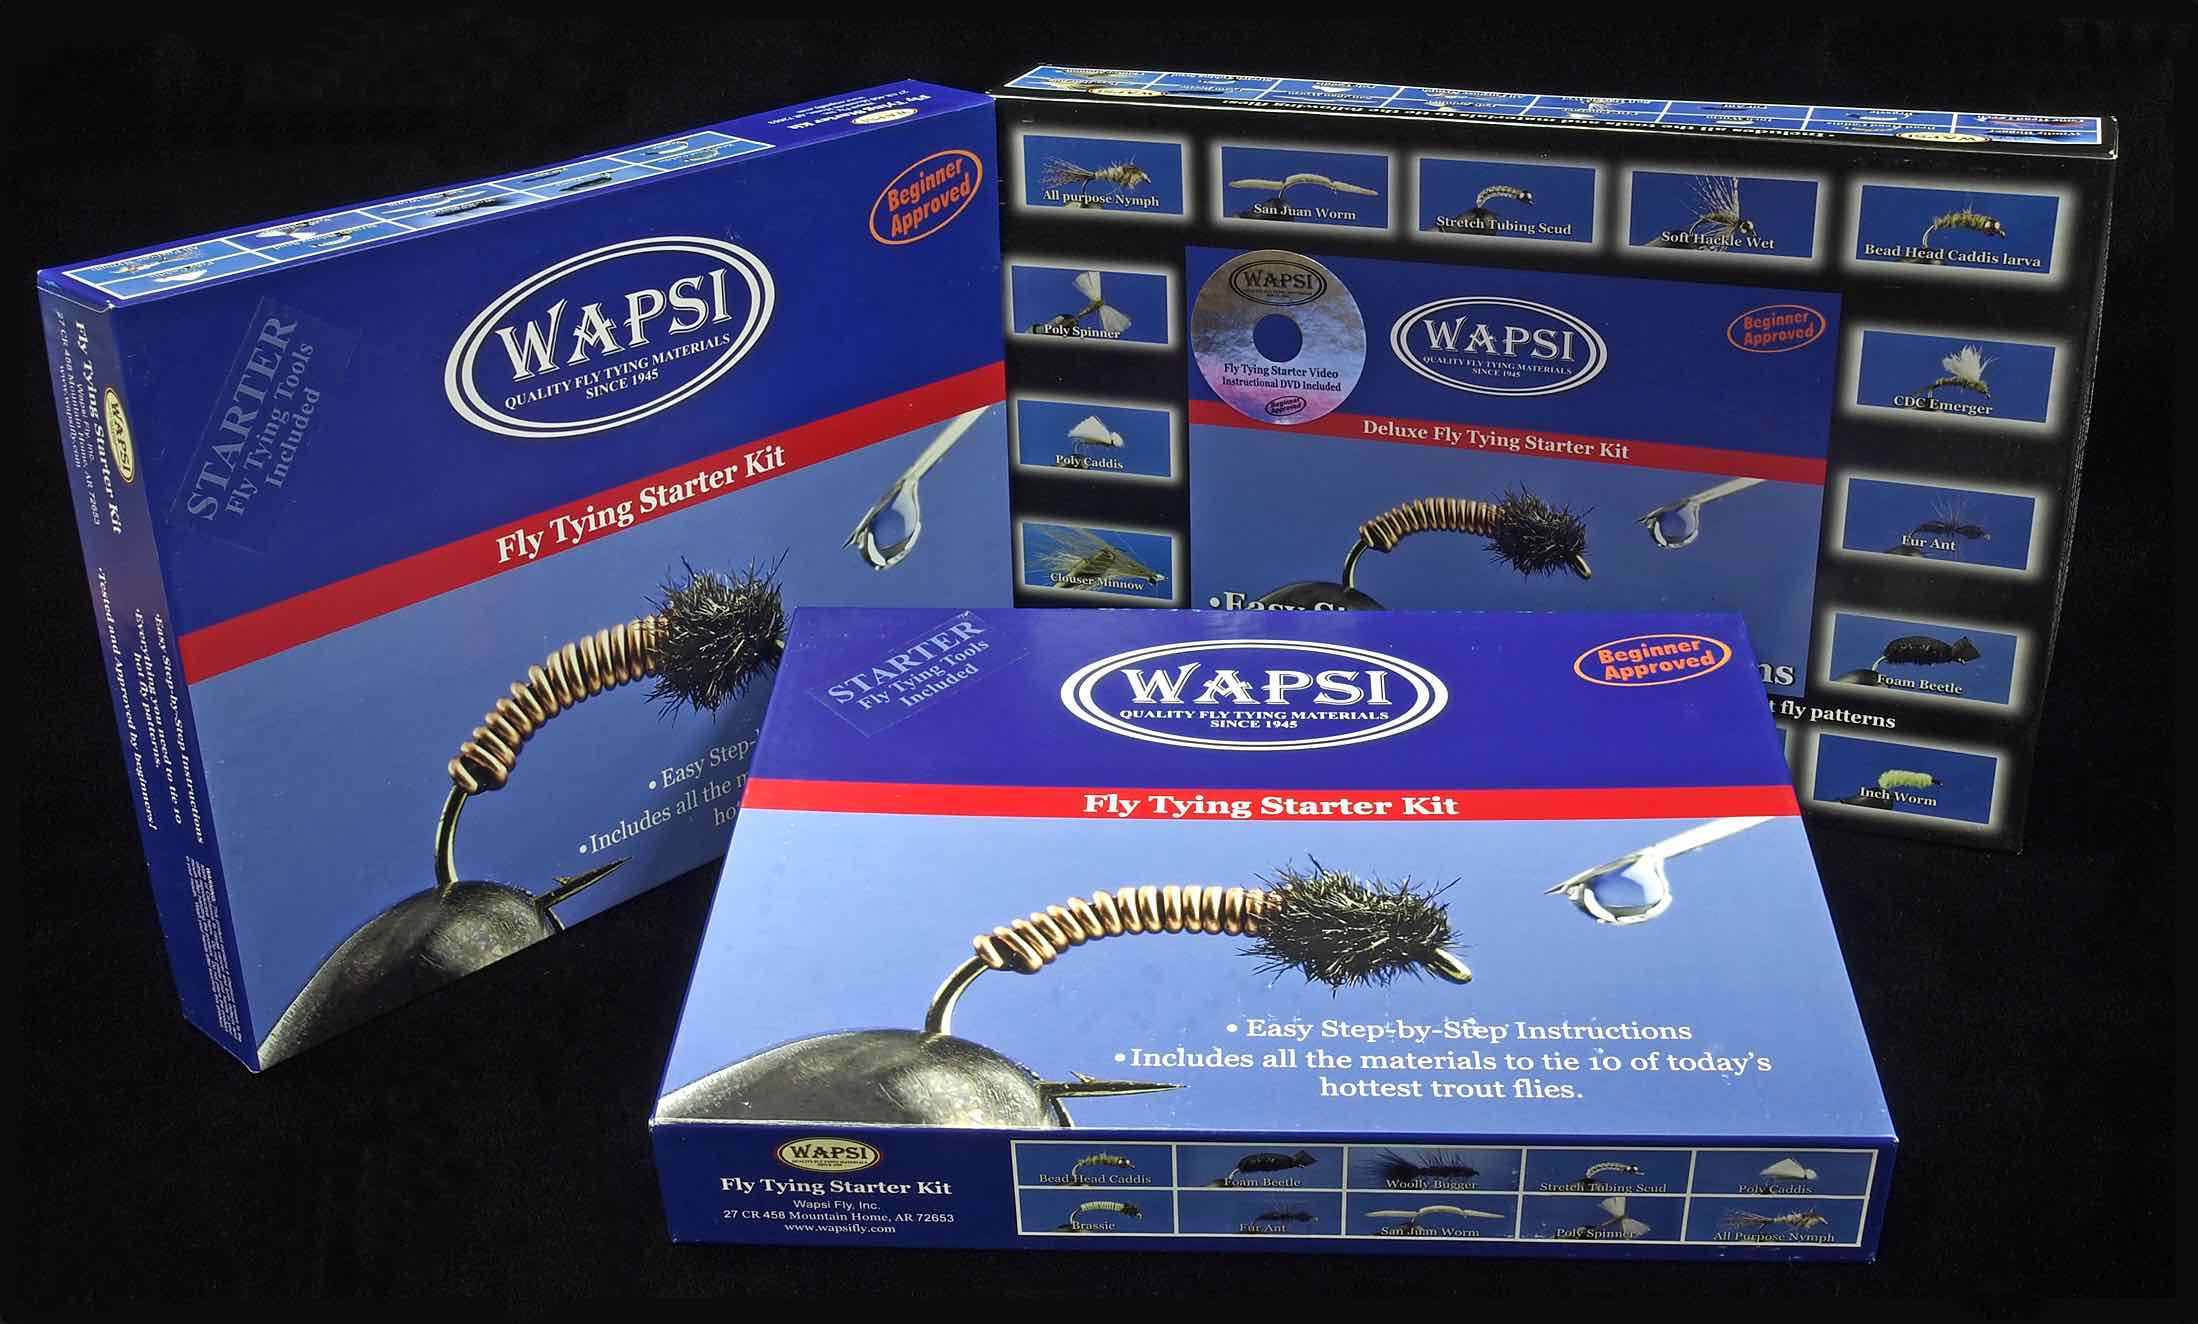 Beginner-Intermediate-Advanced-Wapsi-Fly-Tying-Kits-